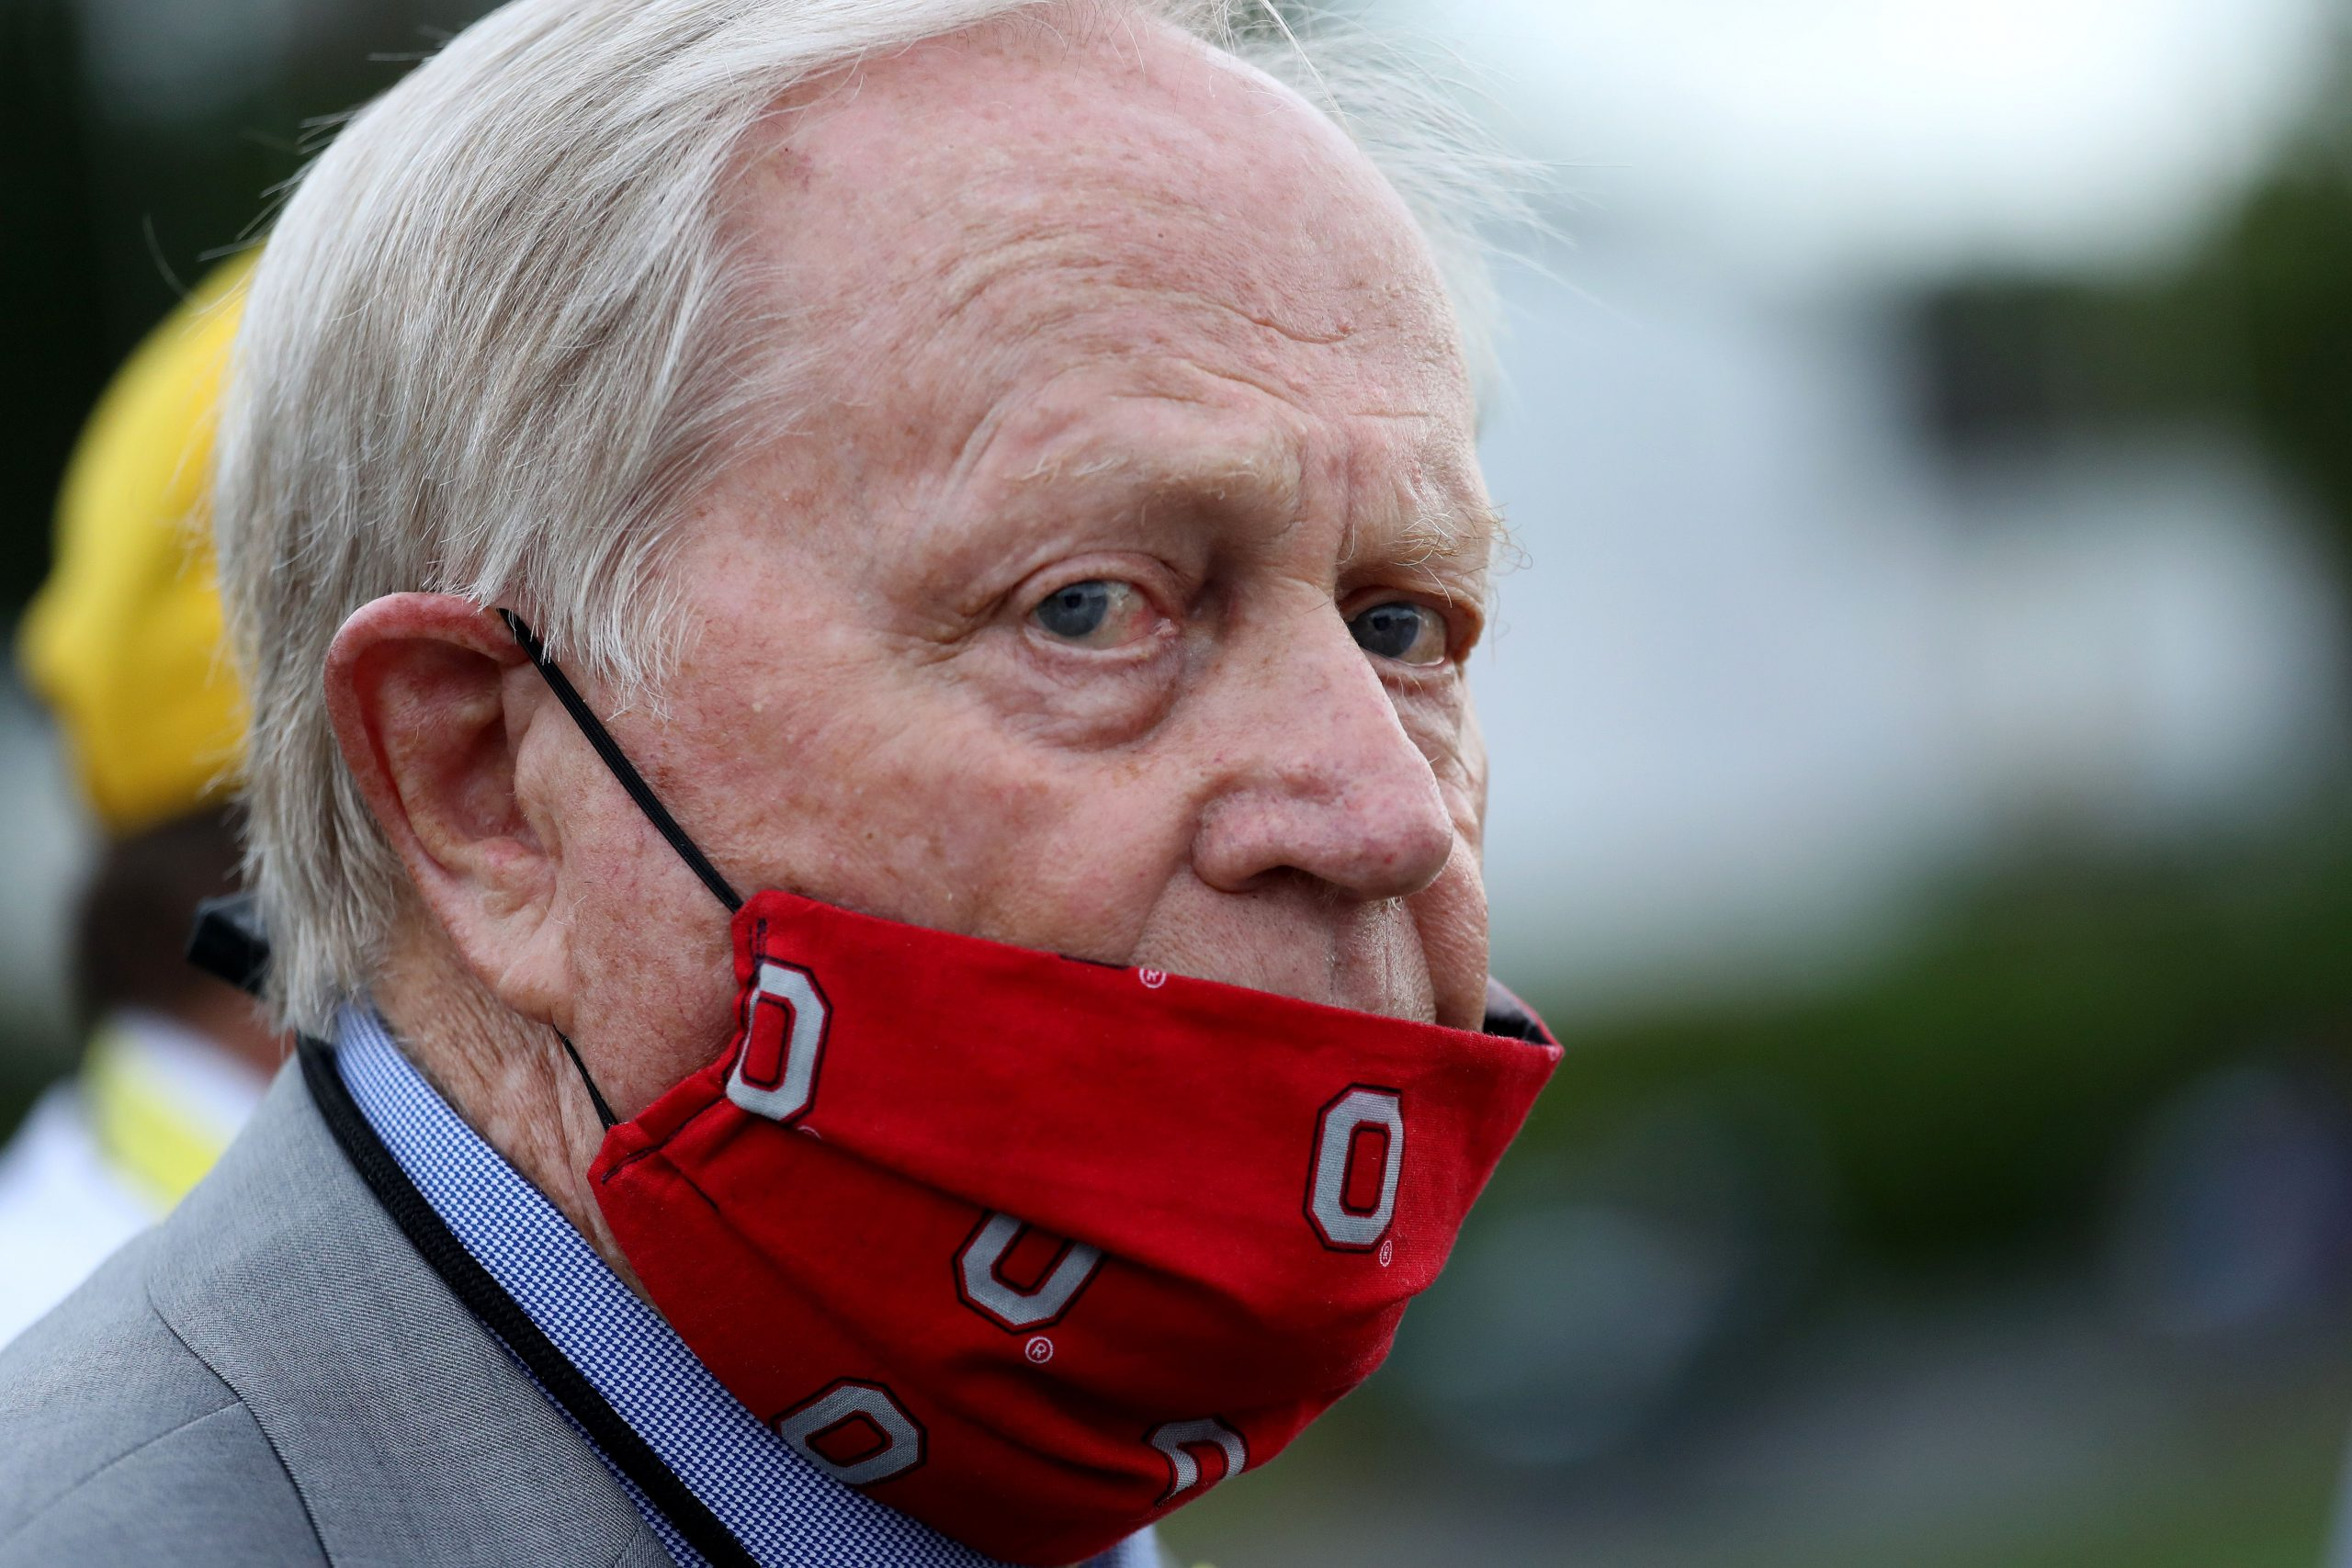 Jack Nicklaus says he took hydroxychloroquine, doubts COVID-19 death count after endorsing Trump